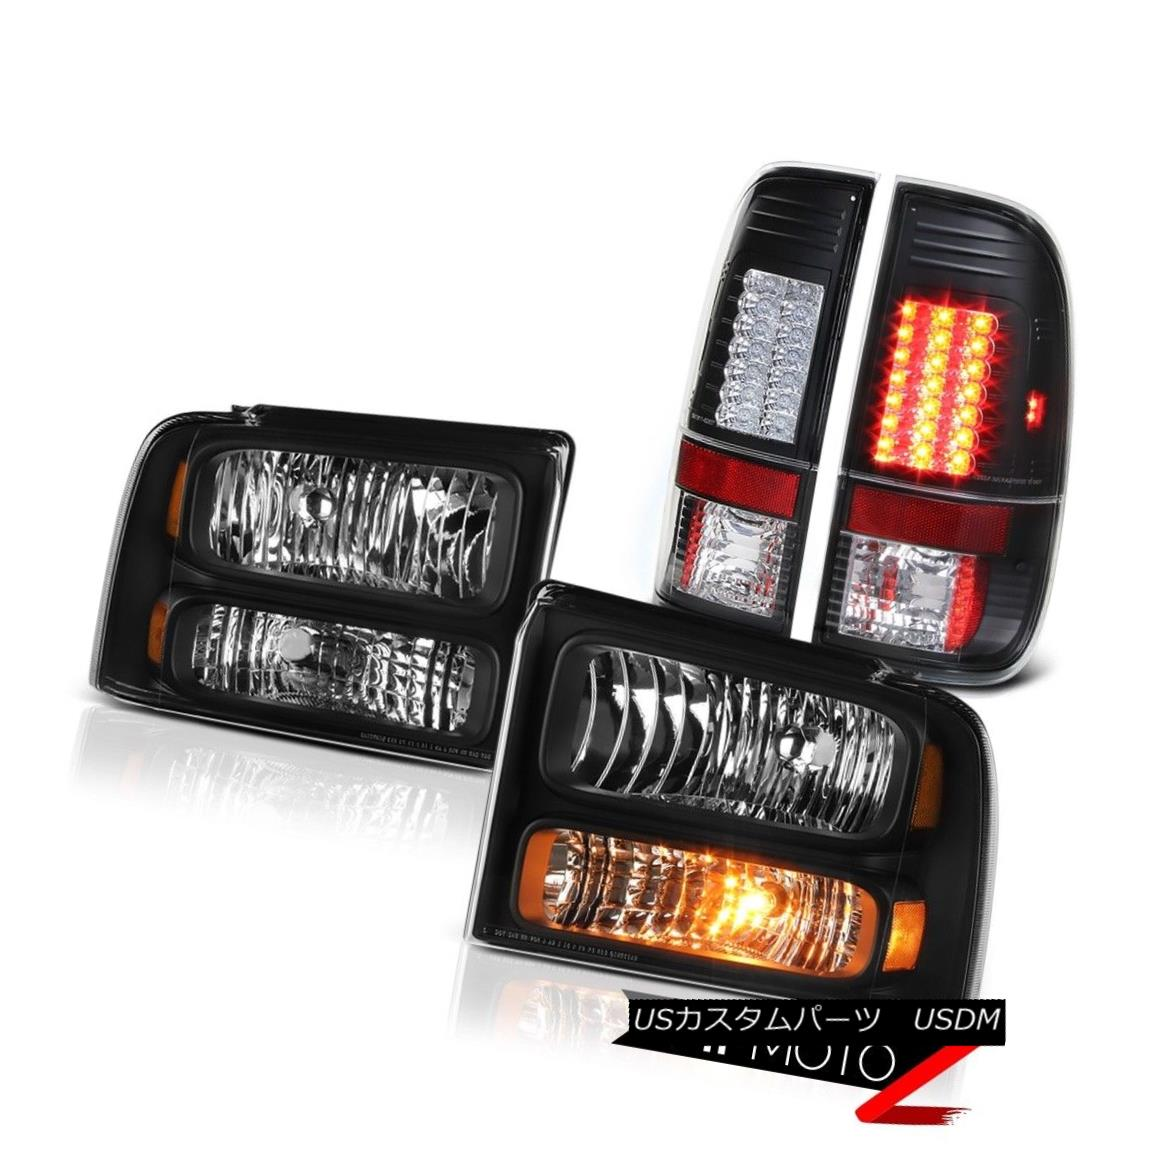 テールライト Pair Black Diamond Headlights LED Tail Lights 2005 2006 2007 Ford F250 SuperDuty ペアブラックダイヤモンドヘッドライトLEDテールライト2005 2006 2007 Ford F250 SuperDuty